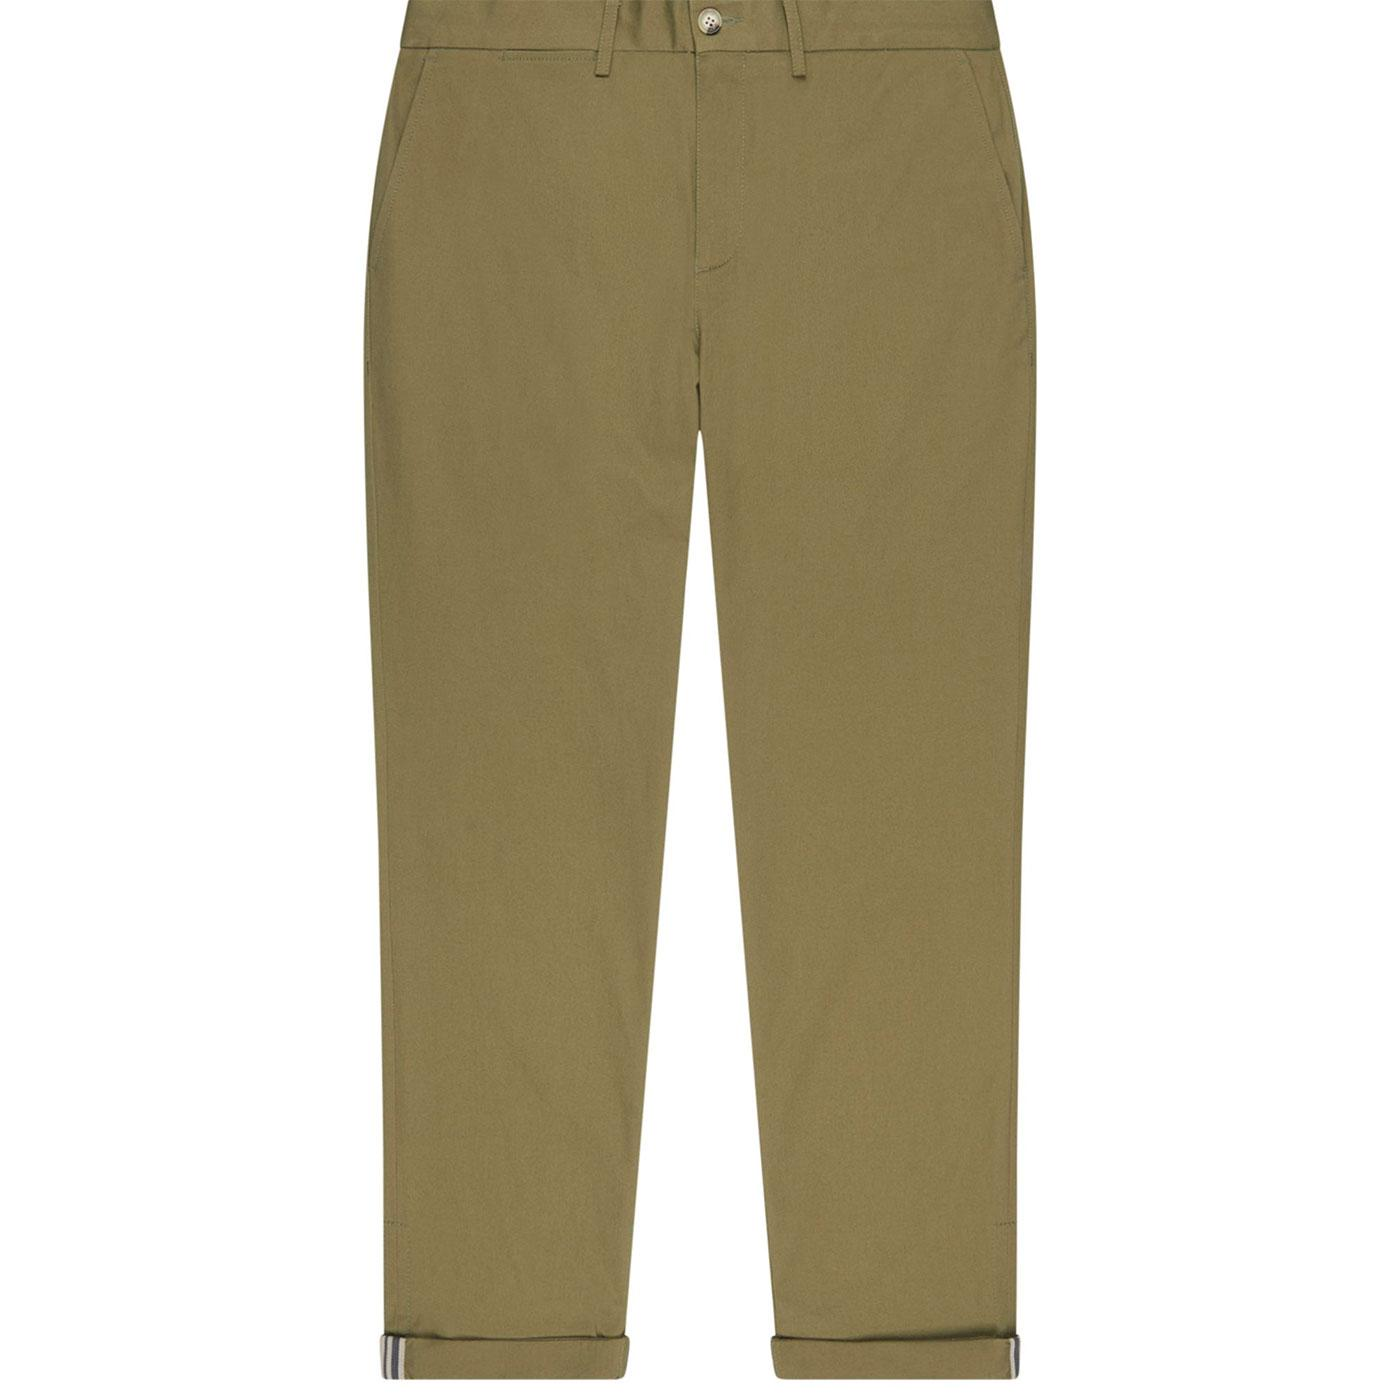 BEN SHERMAN Mens Signature Chino Trousers in Olive